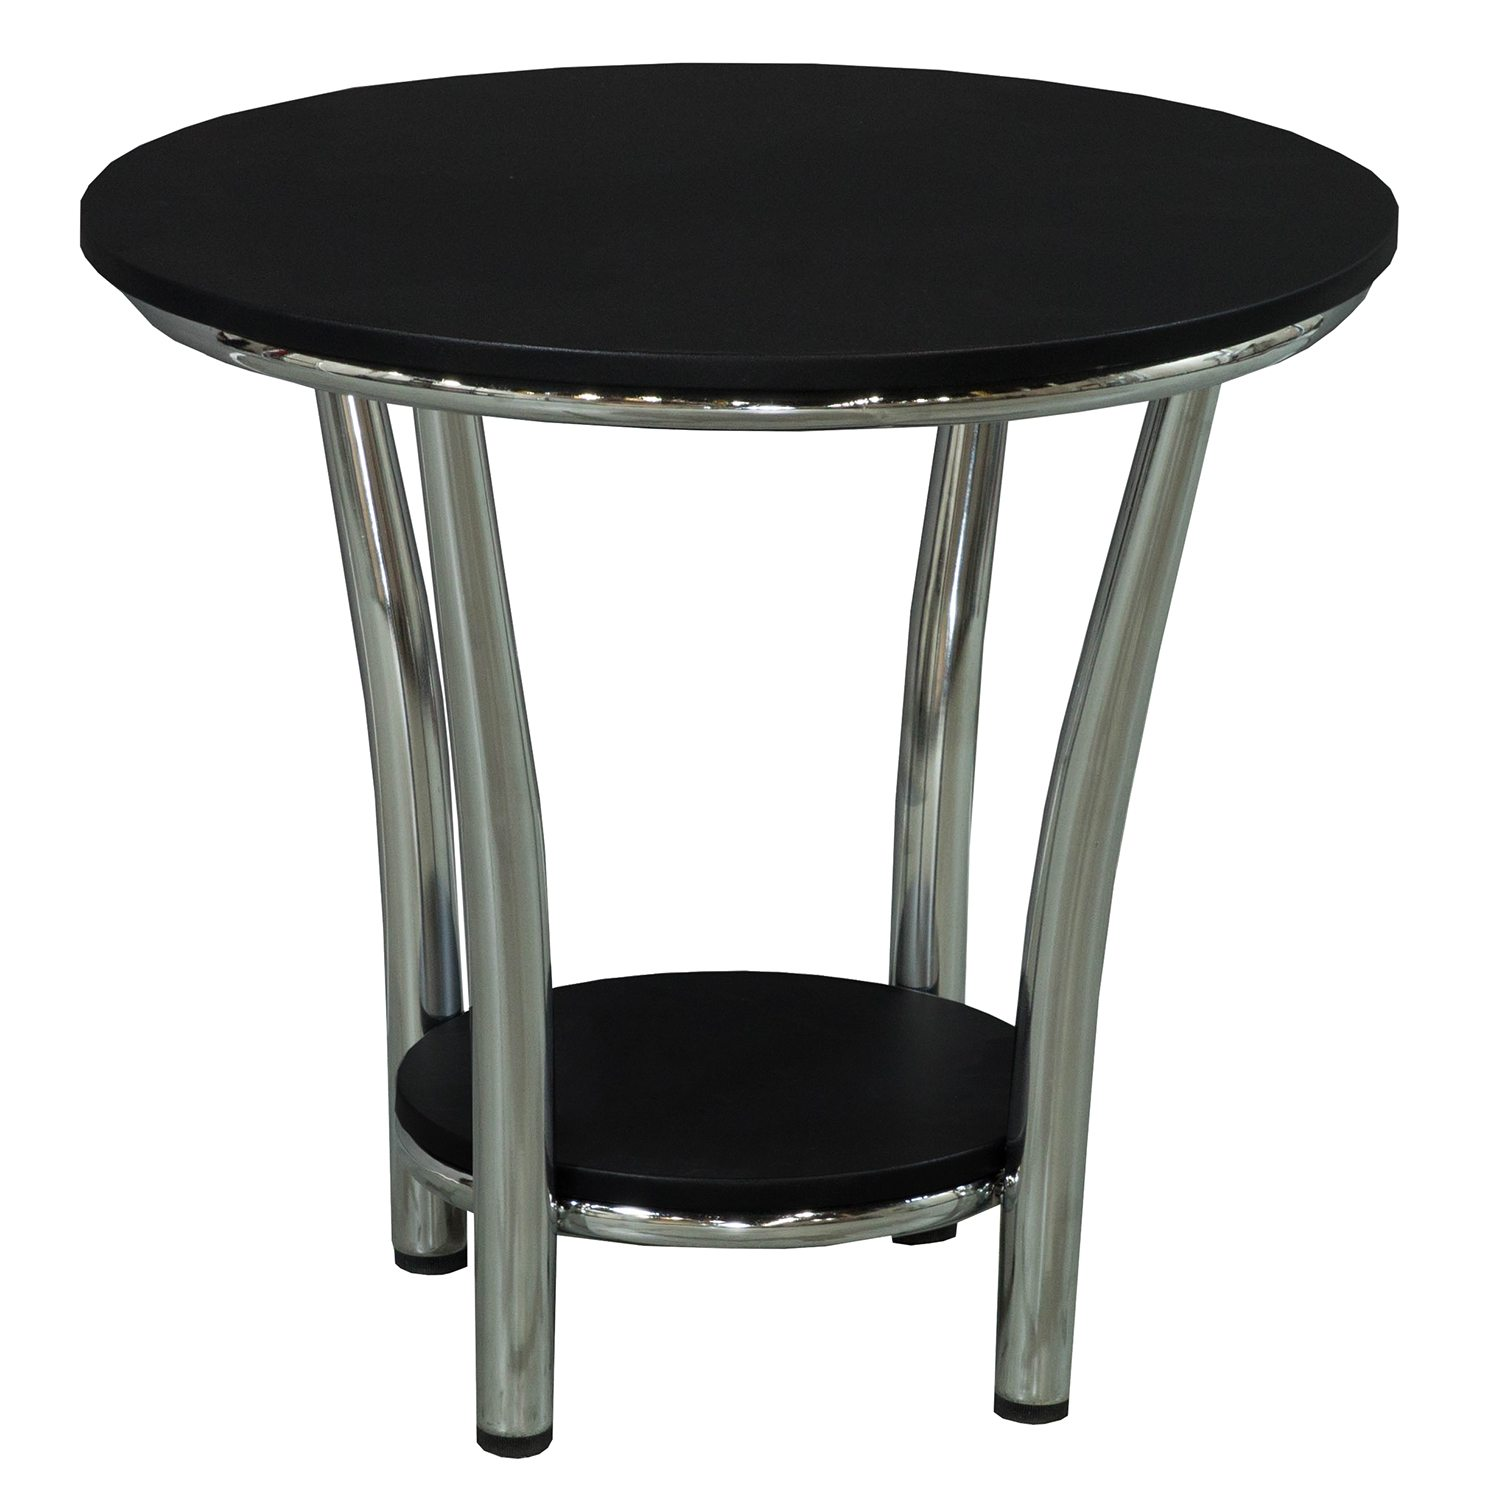 Laminate Round 24 Inch Reception Table Black National